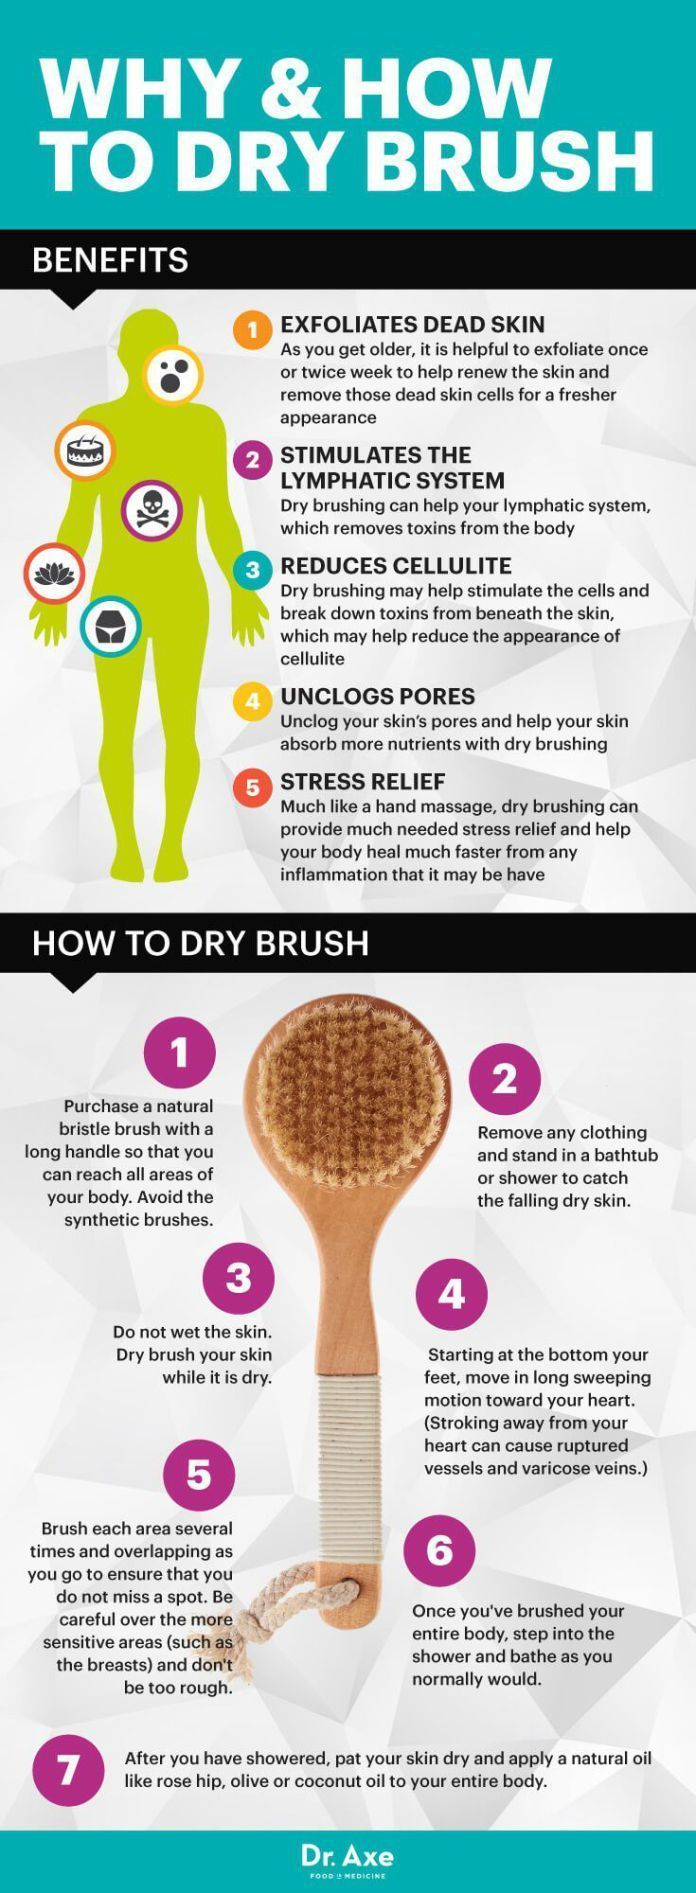 Natural & DIY Skin Care : Dry brushing benefits Dr. Axe www.draxe.com #health #holistic #natural